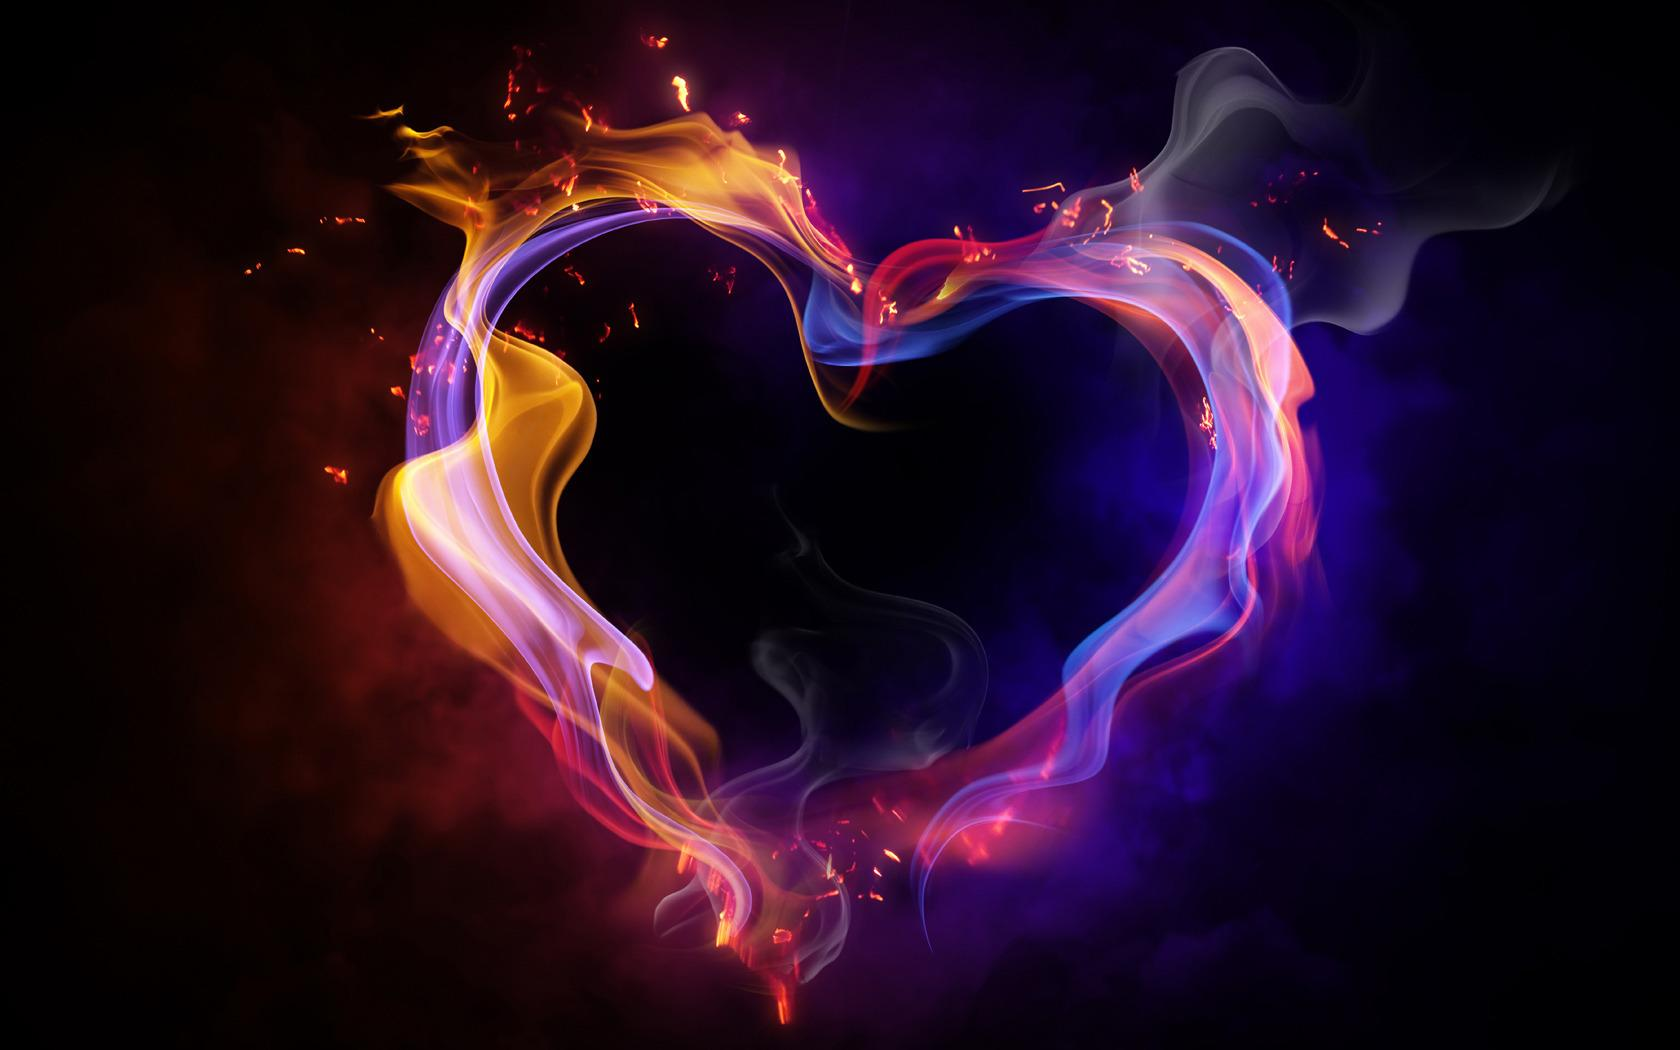 Wallpaper Tags: heart romantic love colorful pretty neon bright beauty